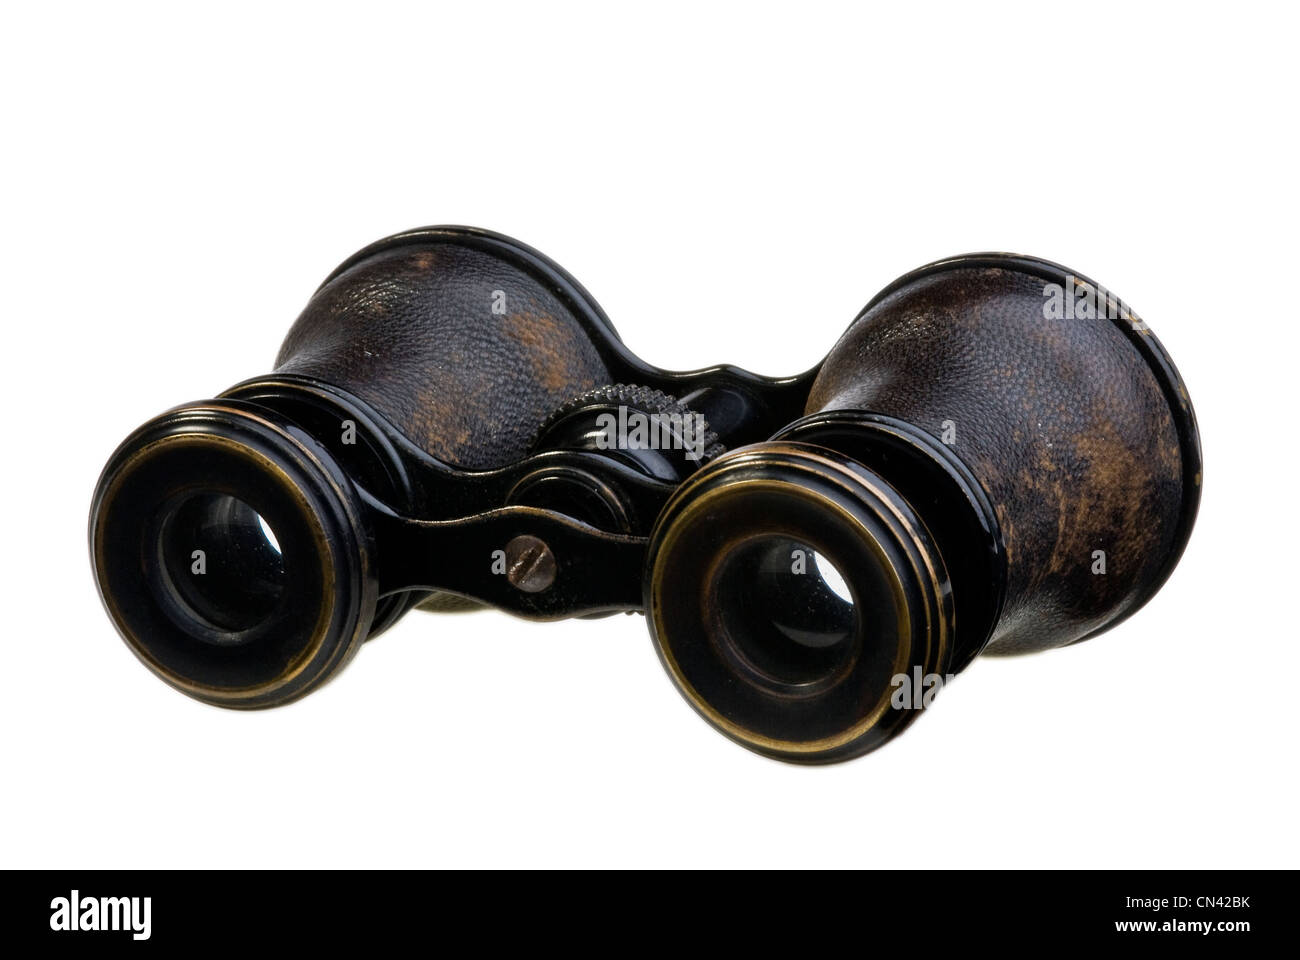 A very old pair of well worn opera glasses. - Stock Image